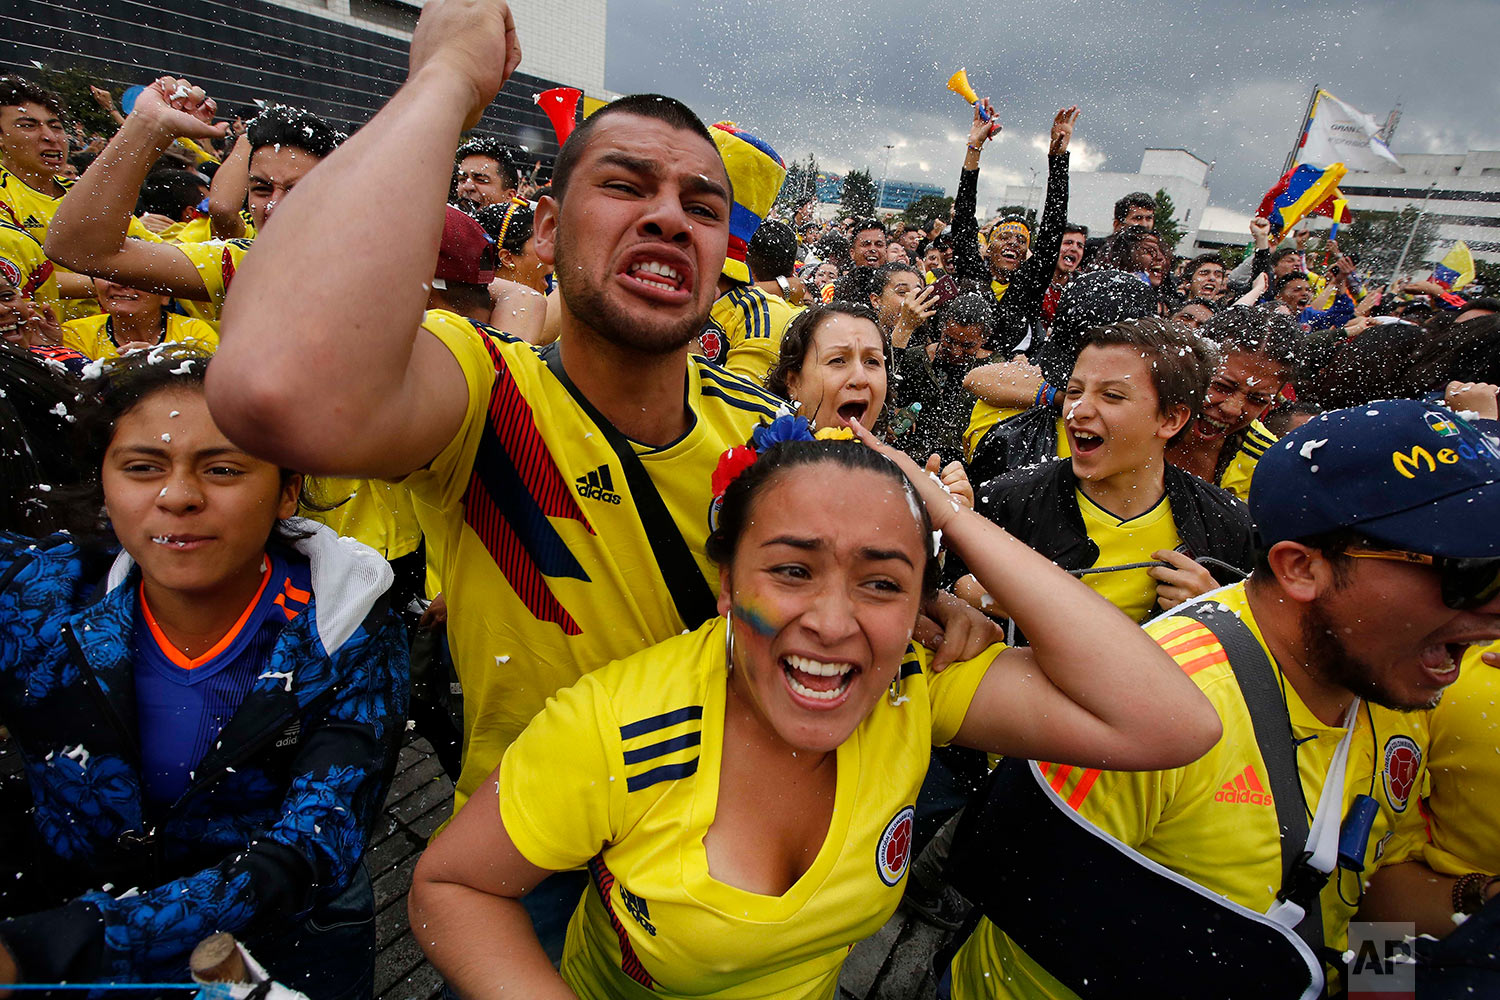 Colombian soccer fans watch a live telecast of a World Cup match between Colombia and England in Bogota, Colombia, July 3, 2018. Colombia lost the match in a penalty shootout. (AP Photo/Fernando Vergara)